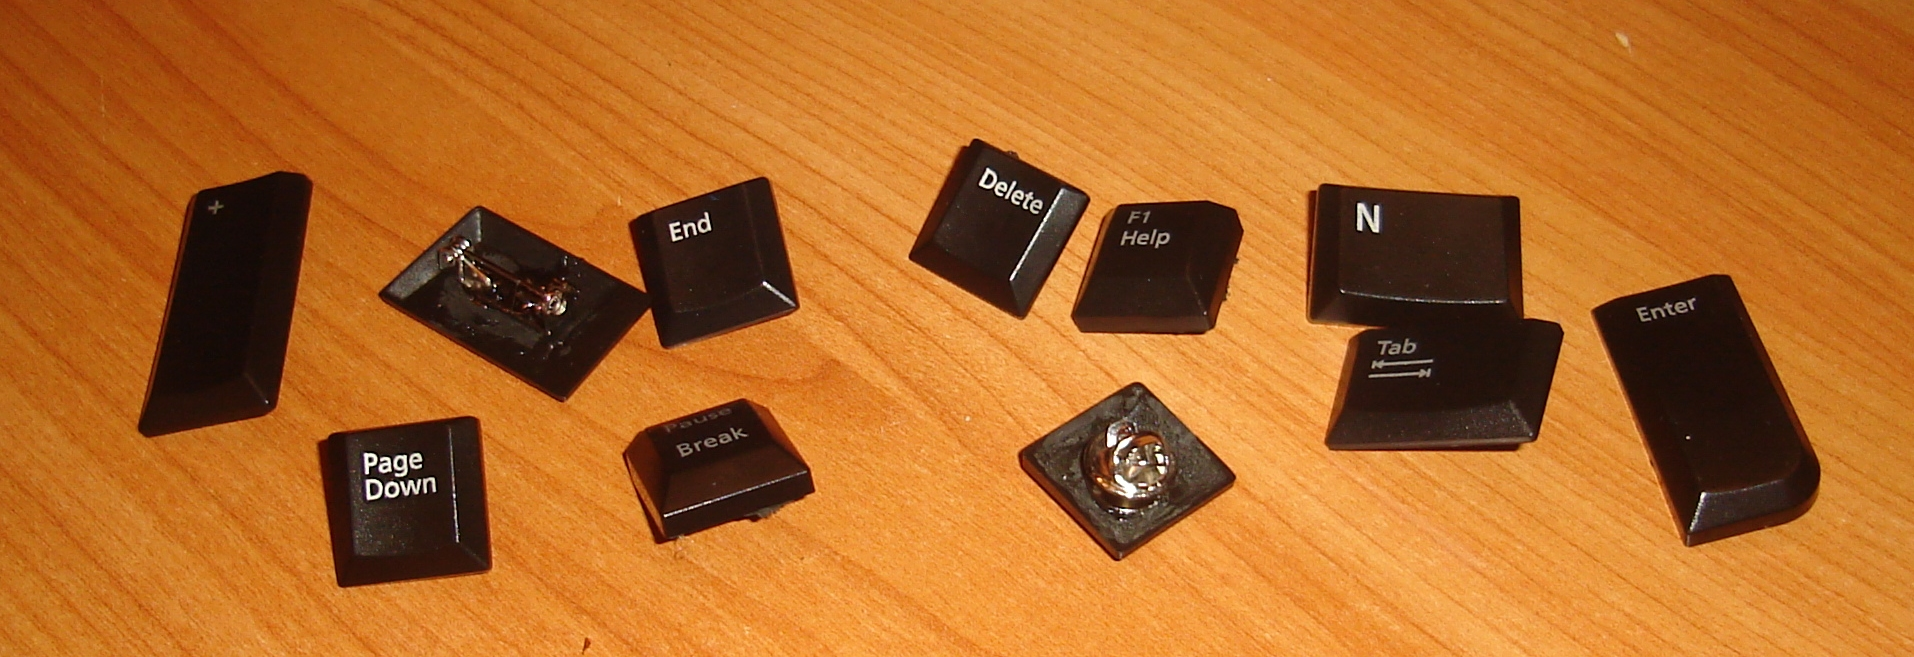 Computer keys made into pins